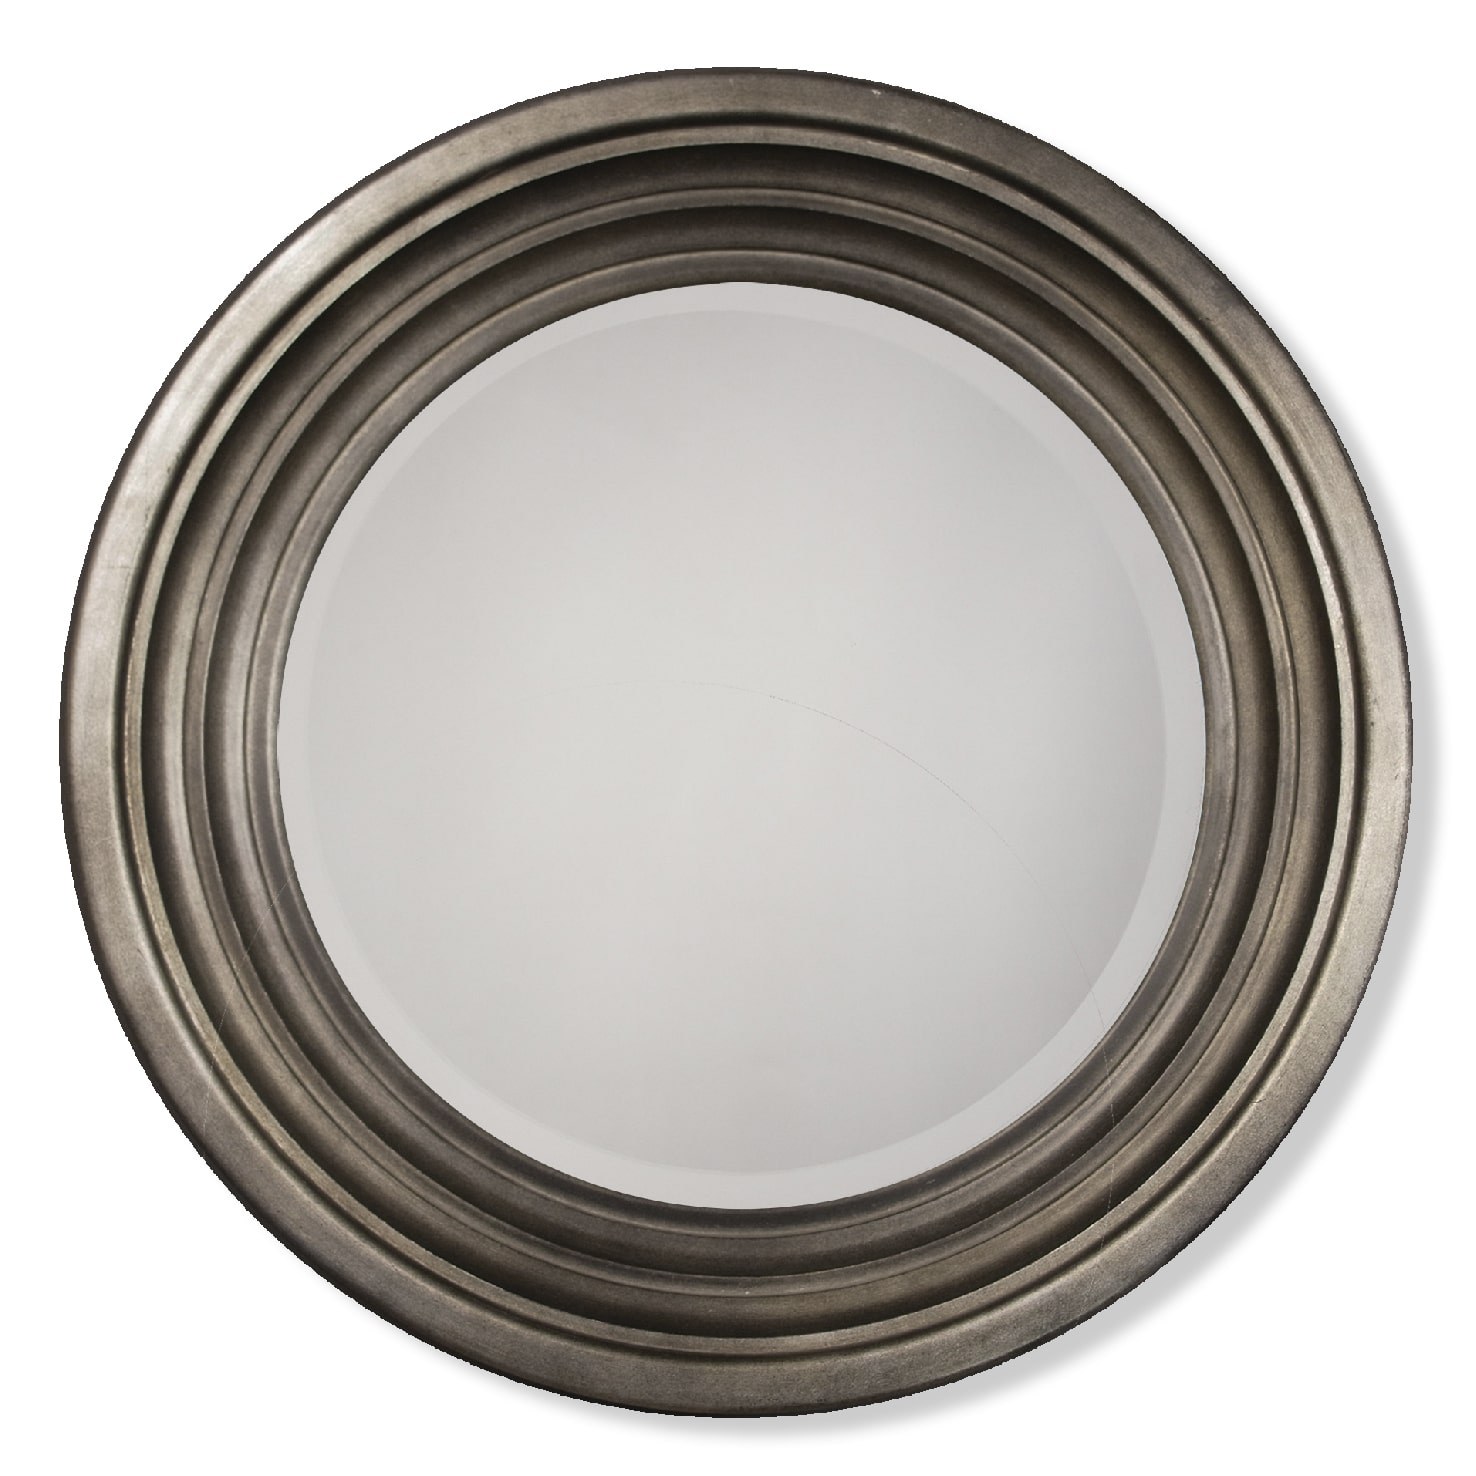 Berwick Round Mirror in Pewter